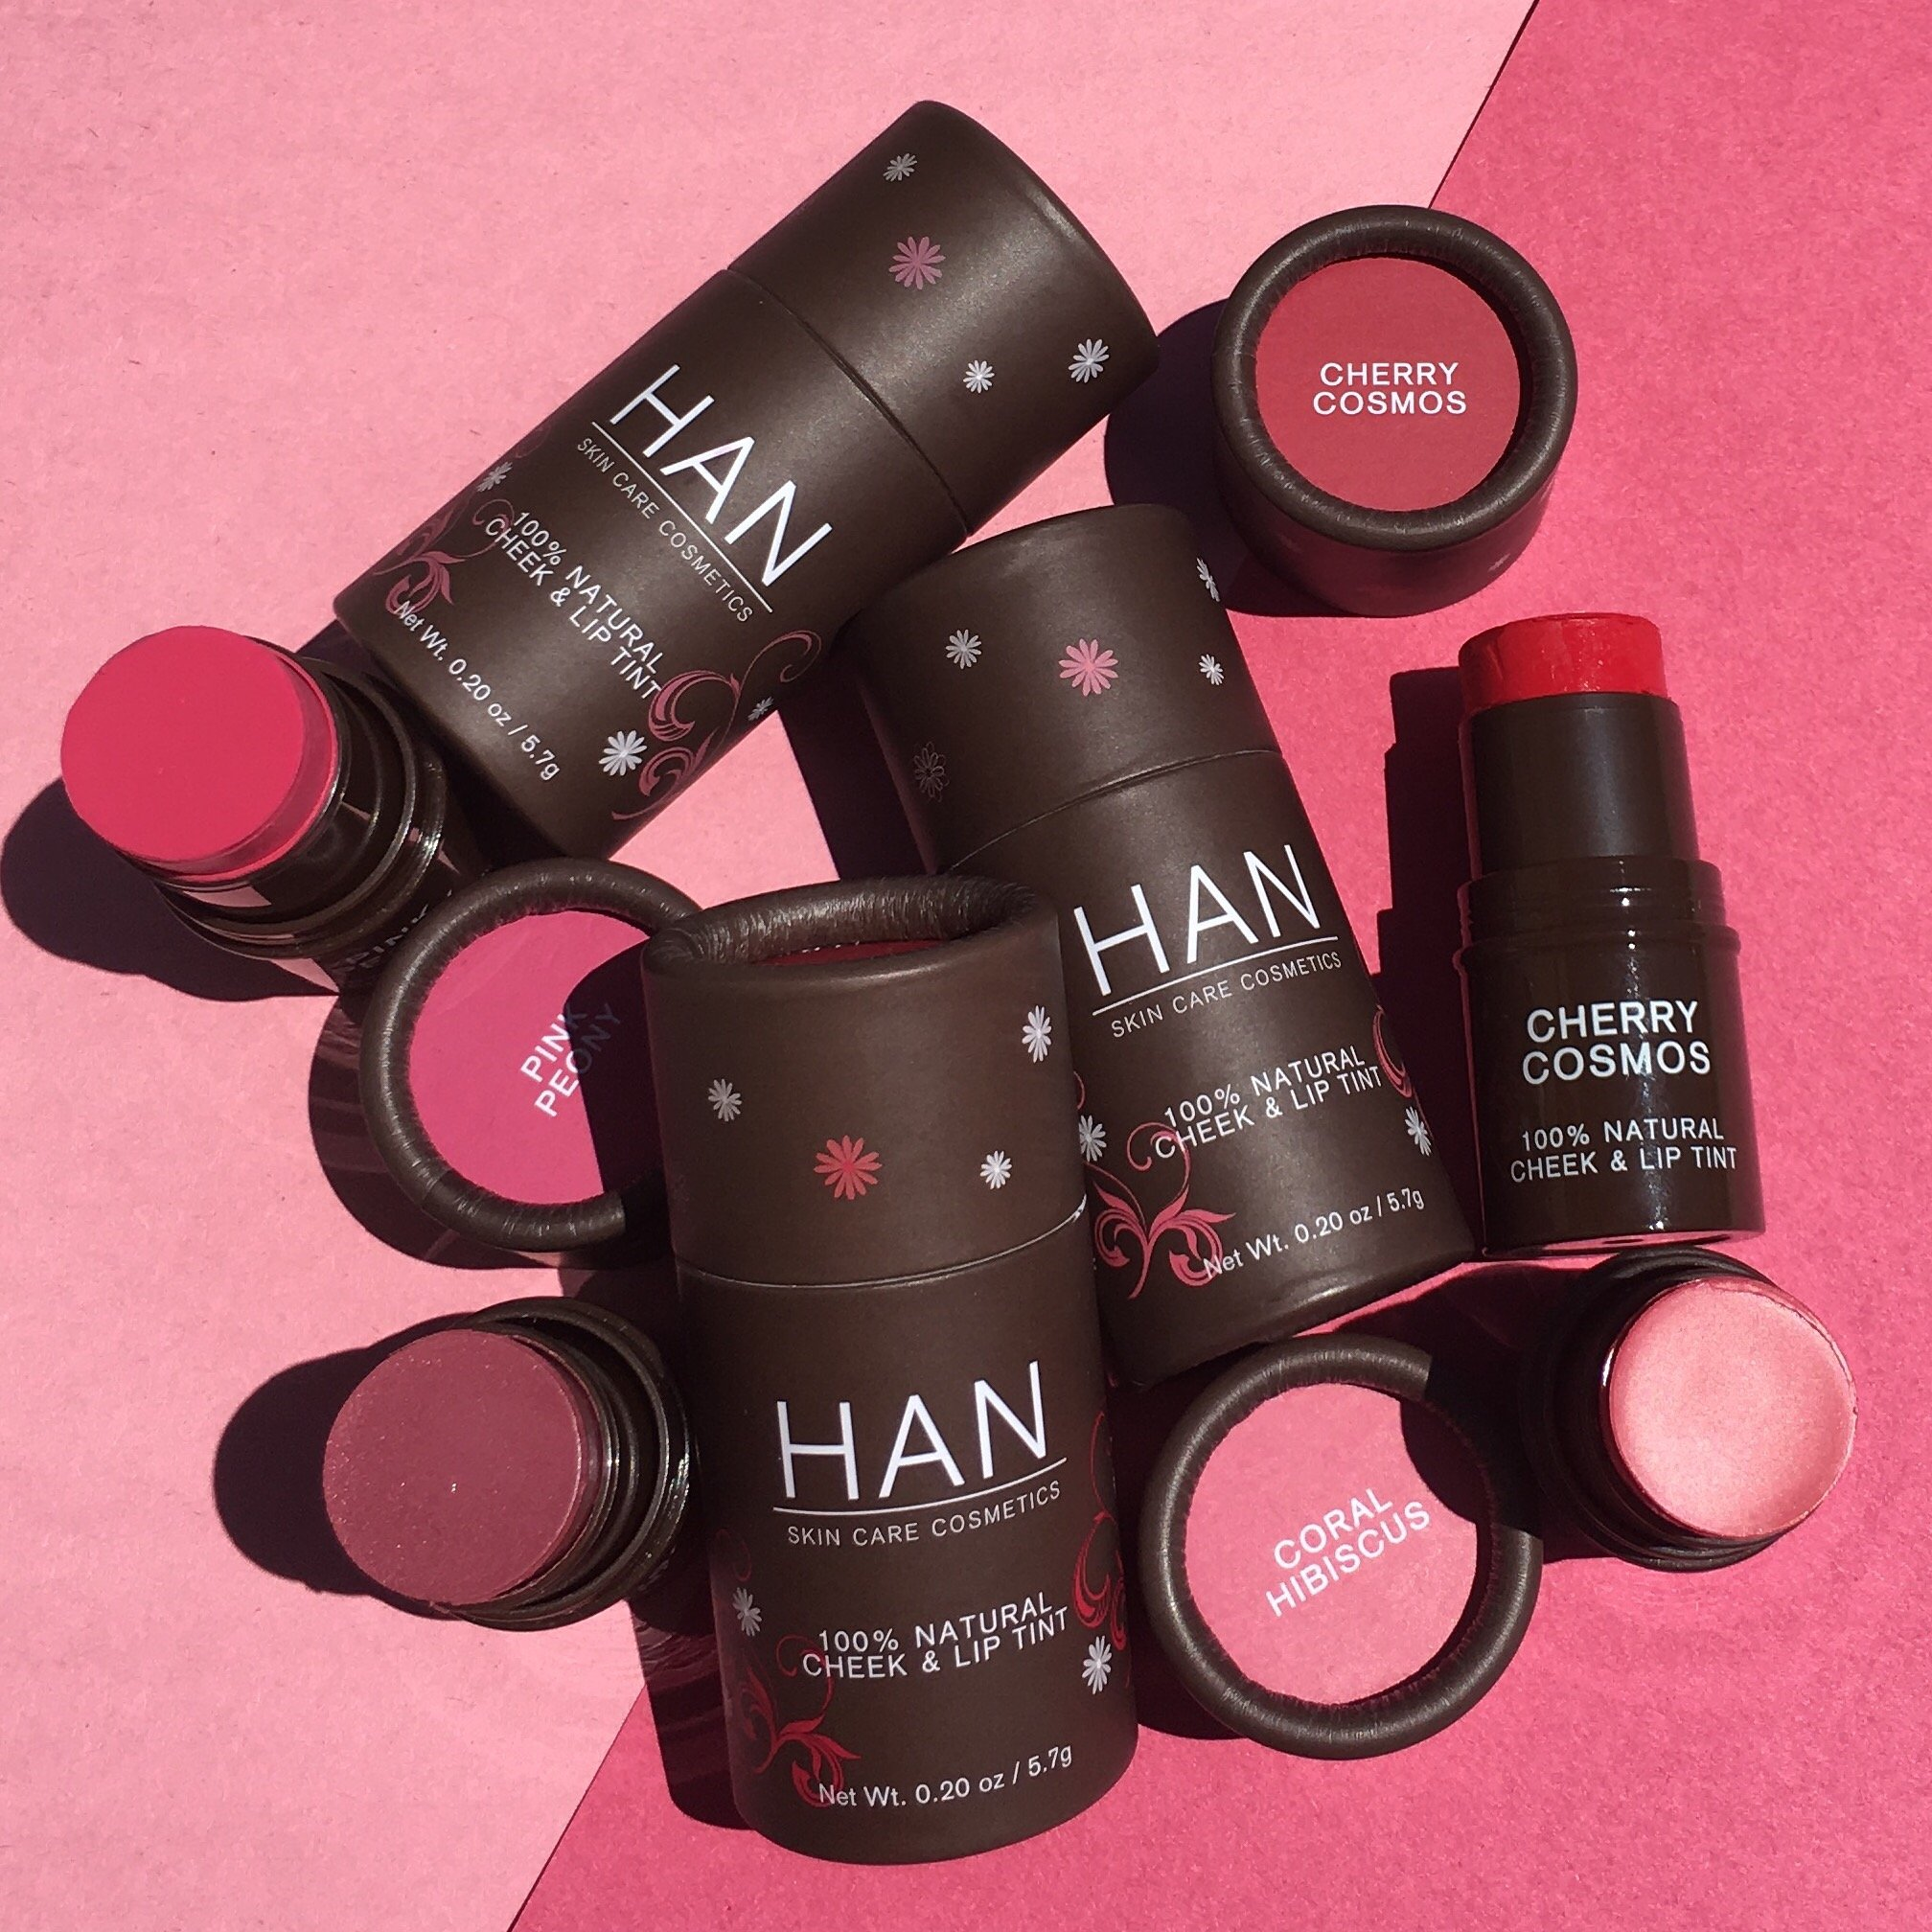 HAN Skin Care Cosmetics Natural Cheek and Lip Tint, Rose Berry by HAN (Image #4)